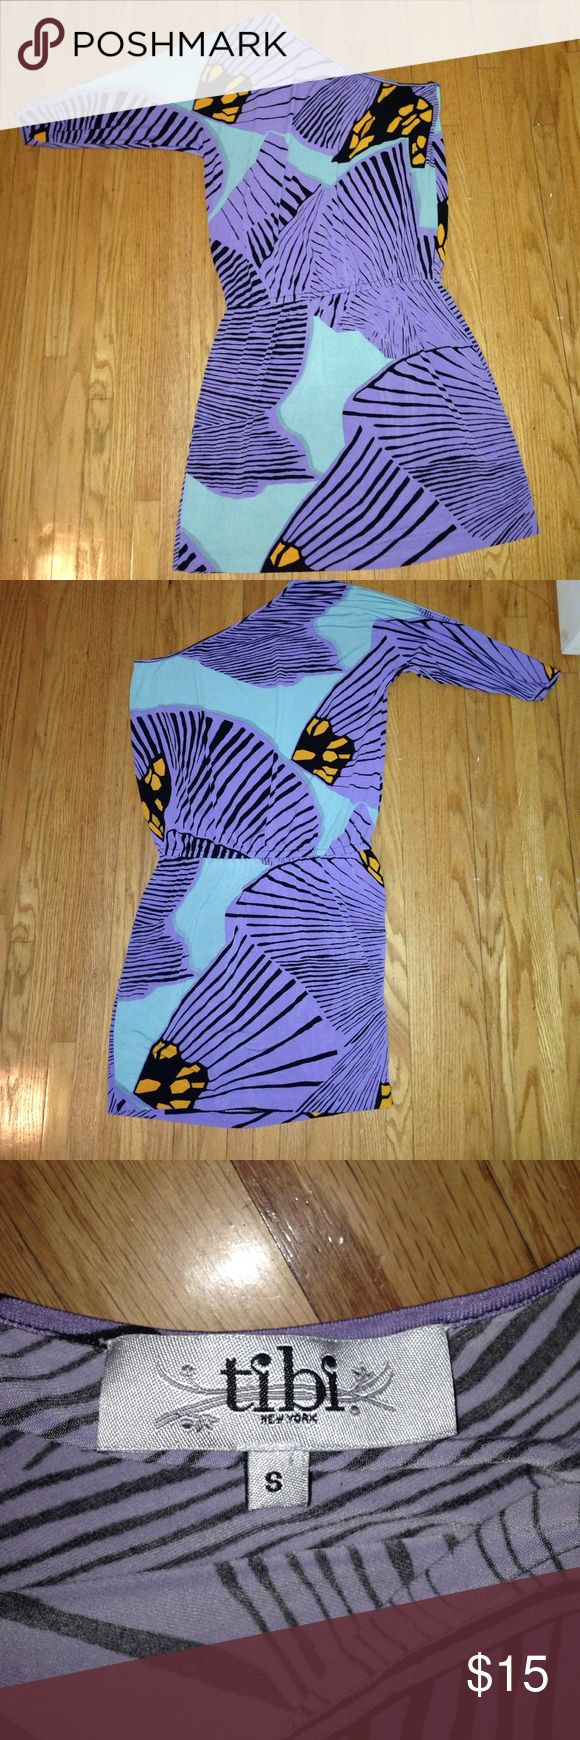 One Shoulder Tibi Dress Super cute and flattering on! Elastic waistband  allows for extra room and comfort. Multi-colored Tibi in purple, teal and orange. Great for summer and into fall! Perfect for weddings or a night out! Tibi Dresses Midi